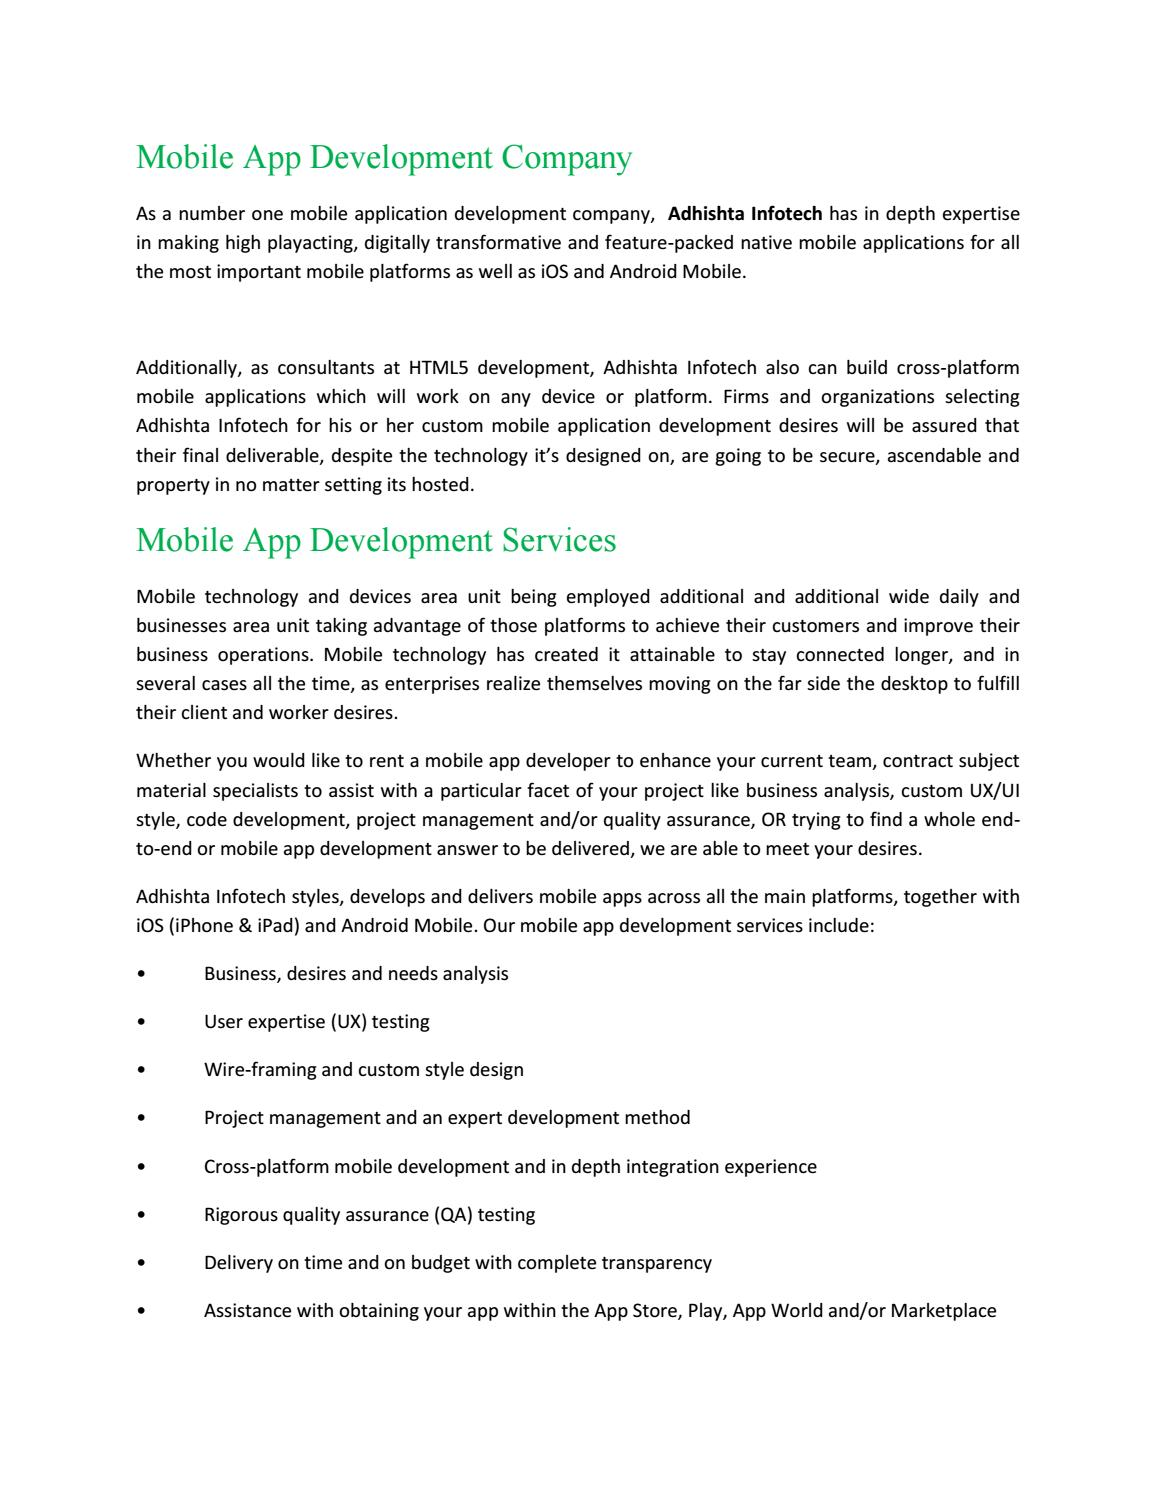 Mobile App Development Company in Hyderabad by Webdesign Web